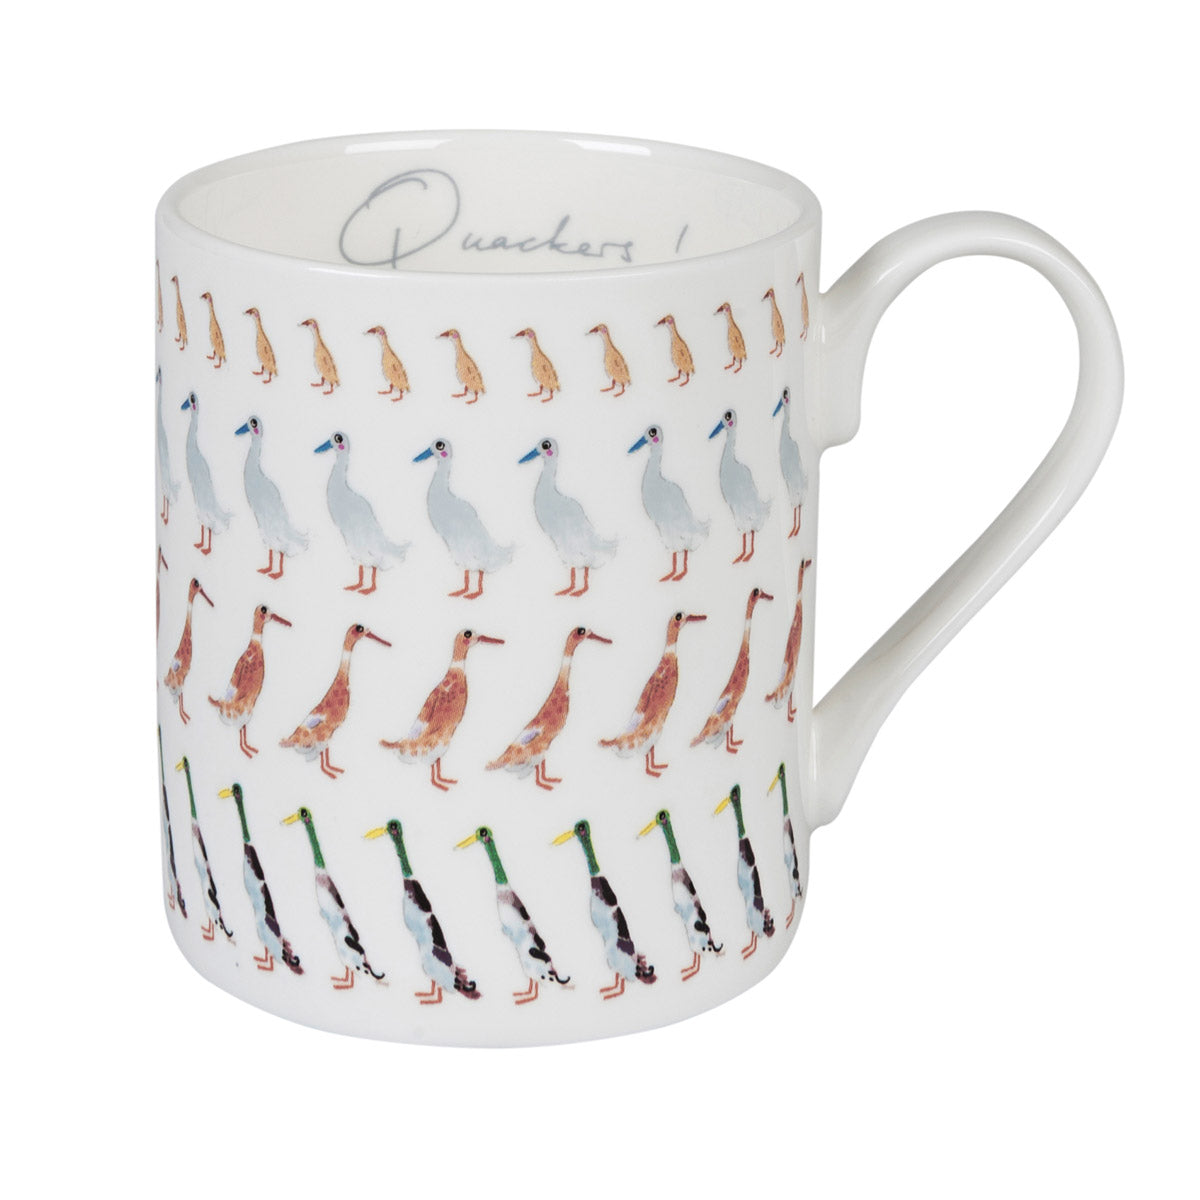 Runner Duck Quackers! Mug